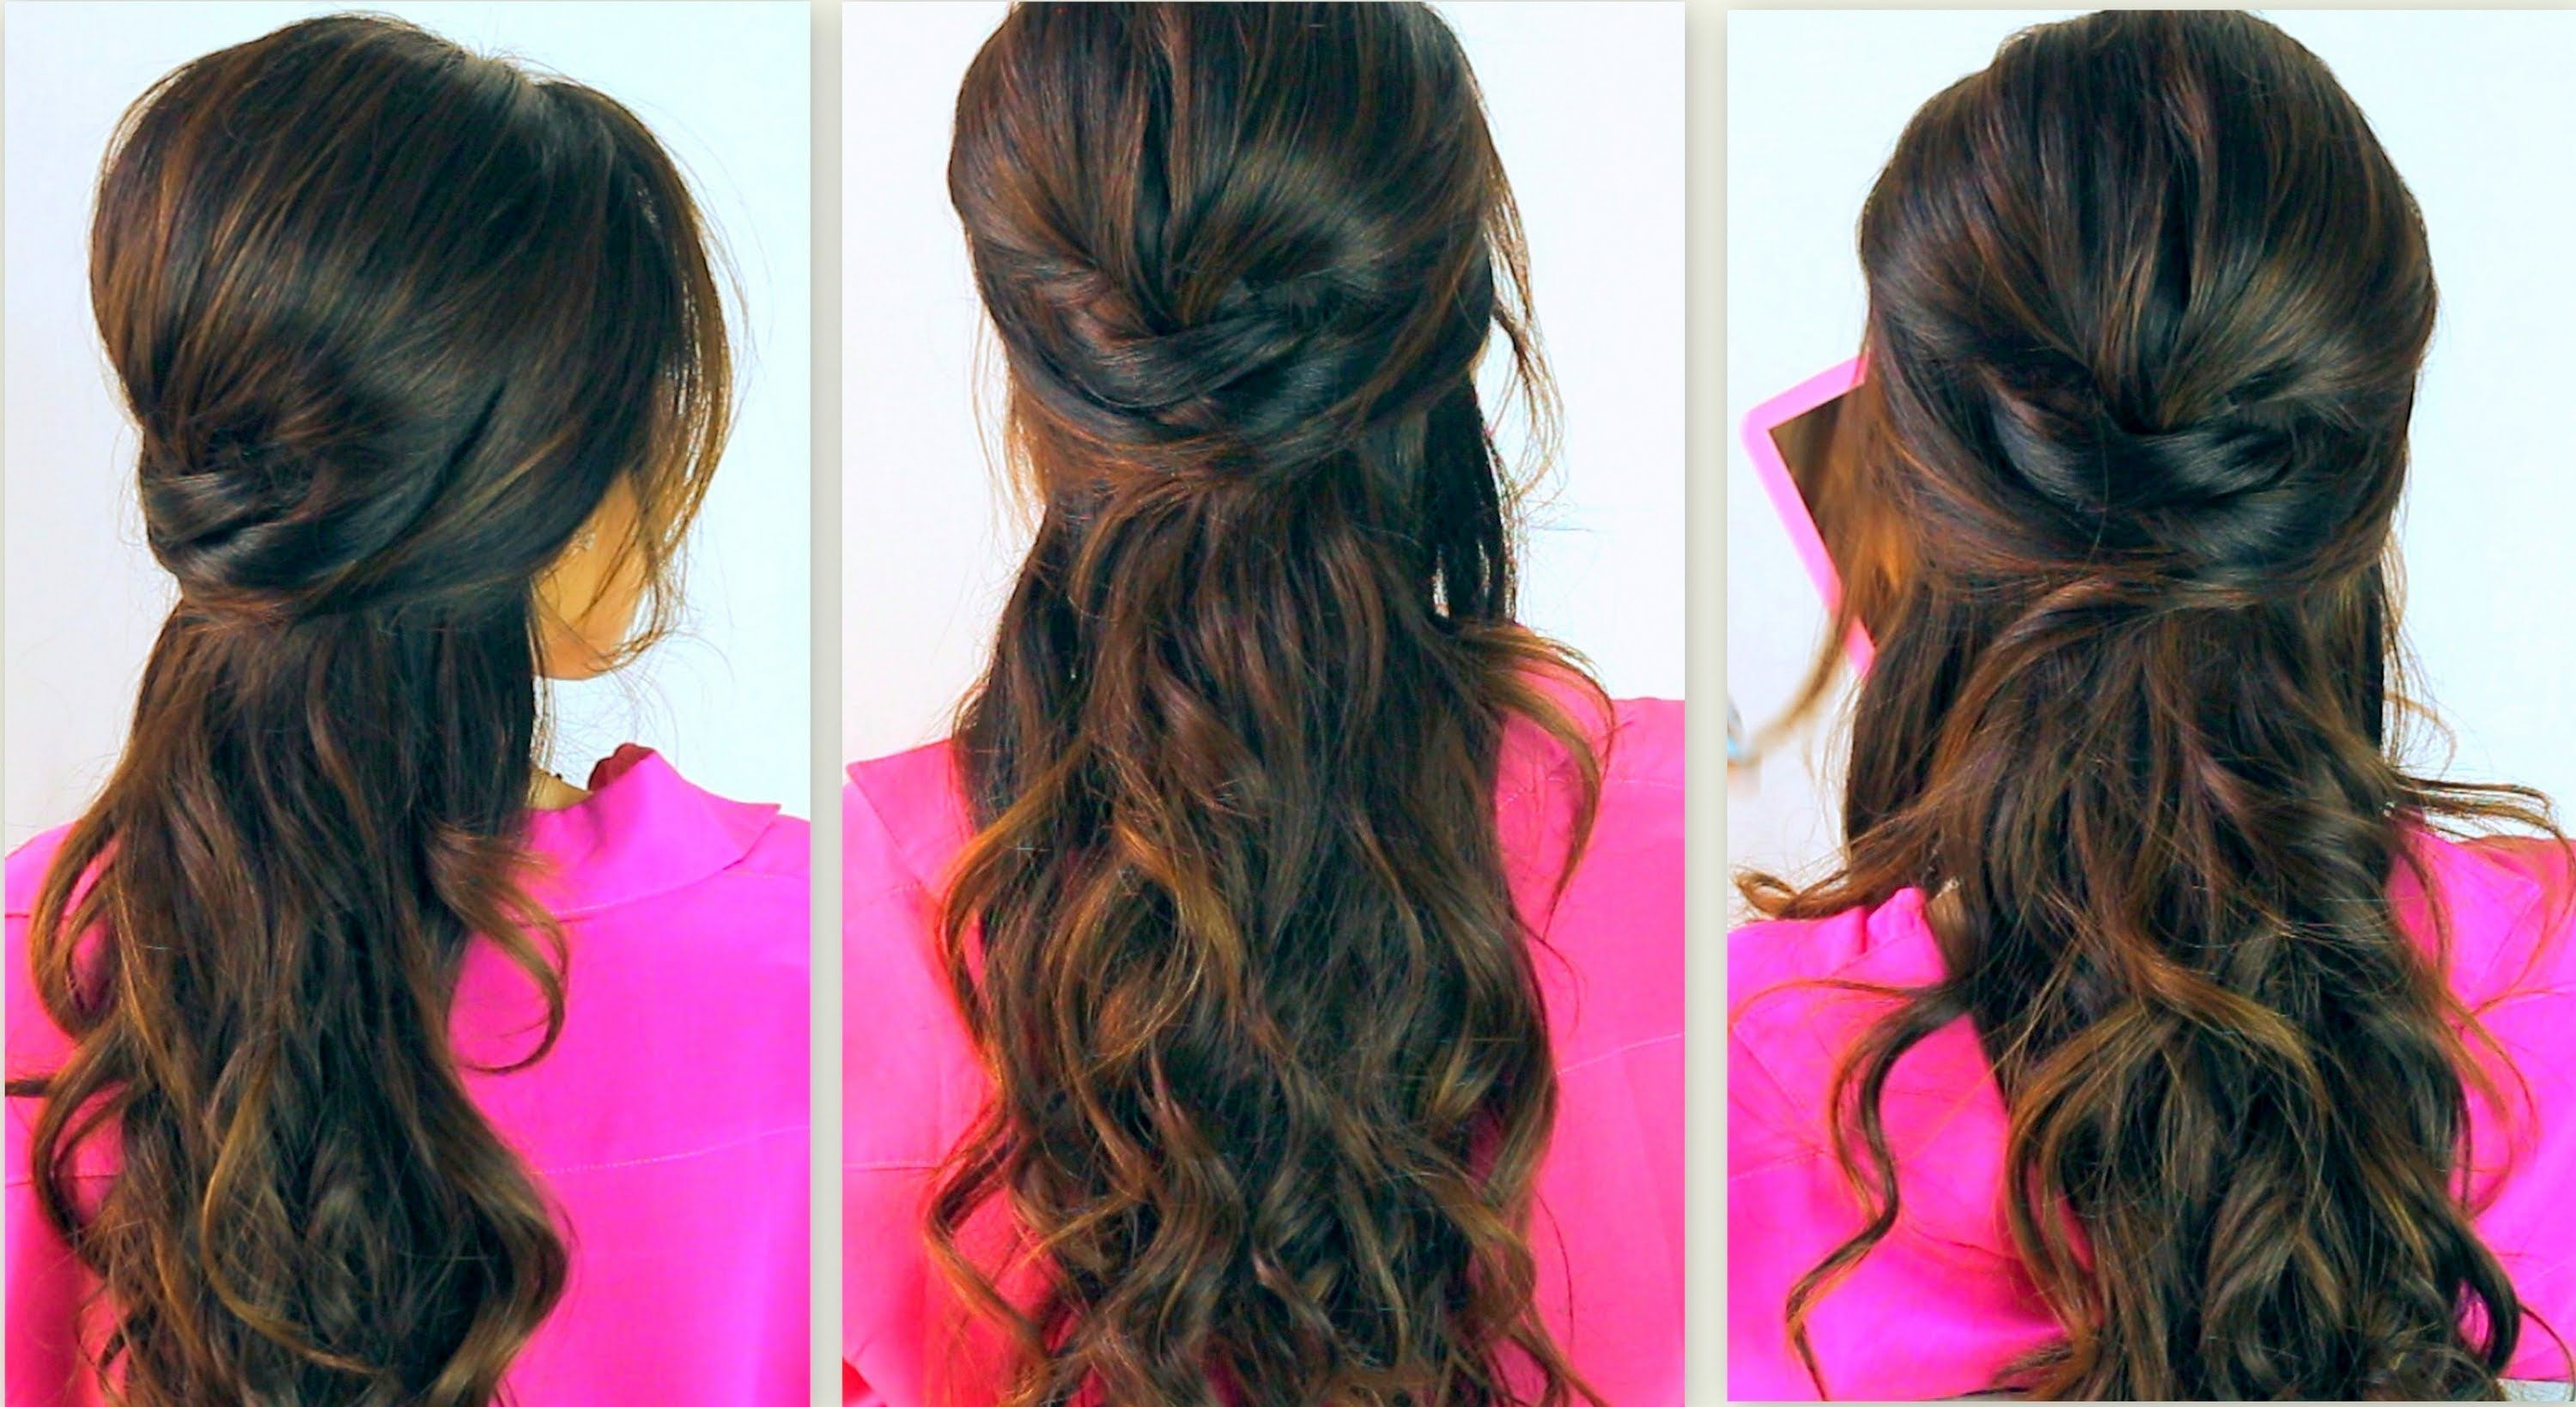 ★CUTE BACK-TO-SCHOOL HAIRSTYLES